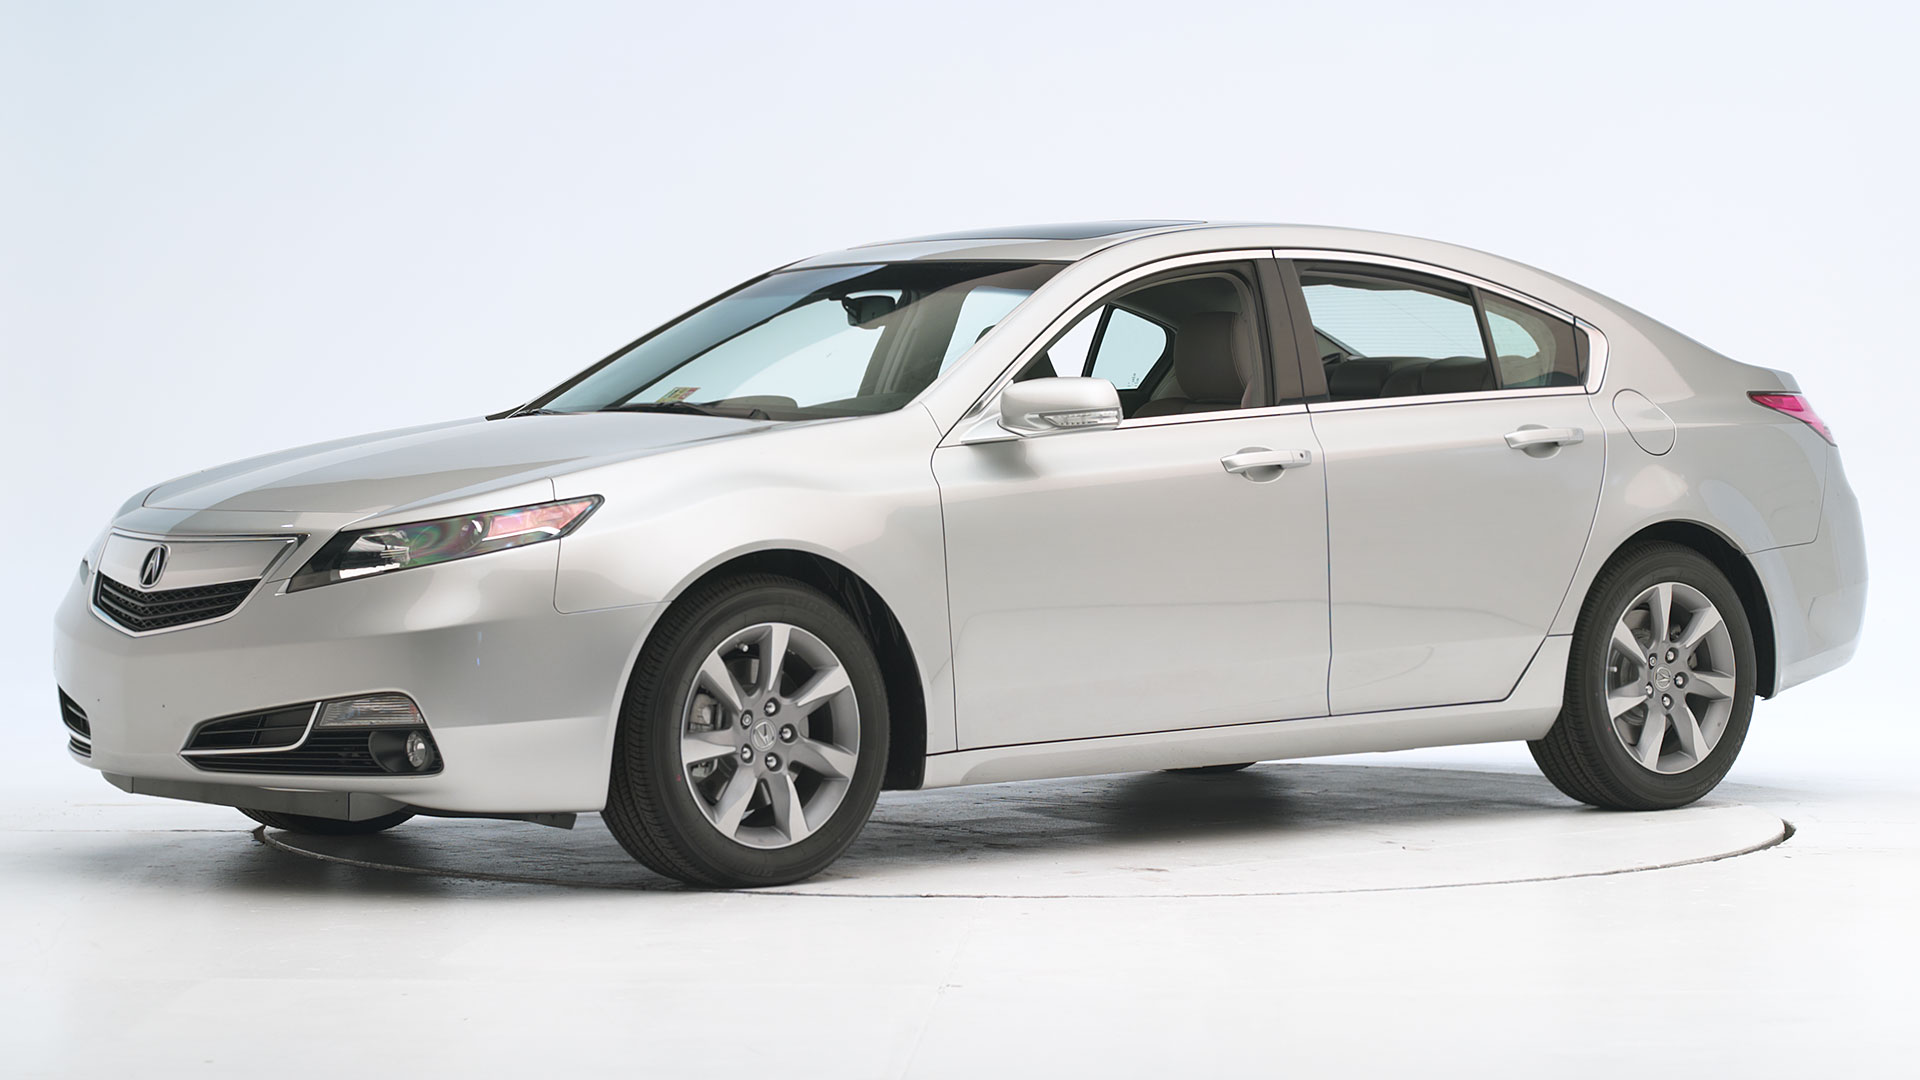 2013 Acura TL 4-door sedan